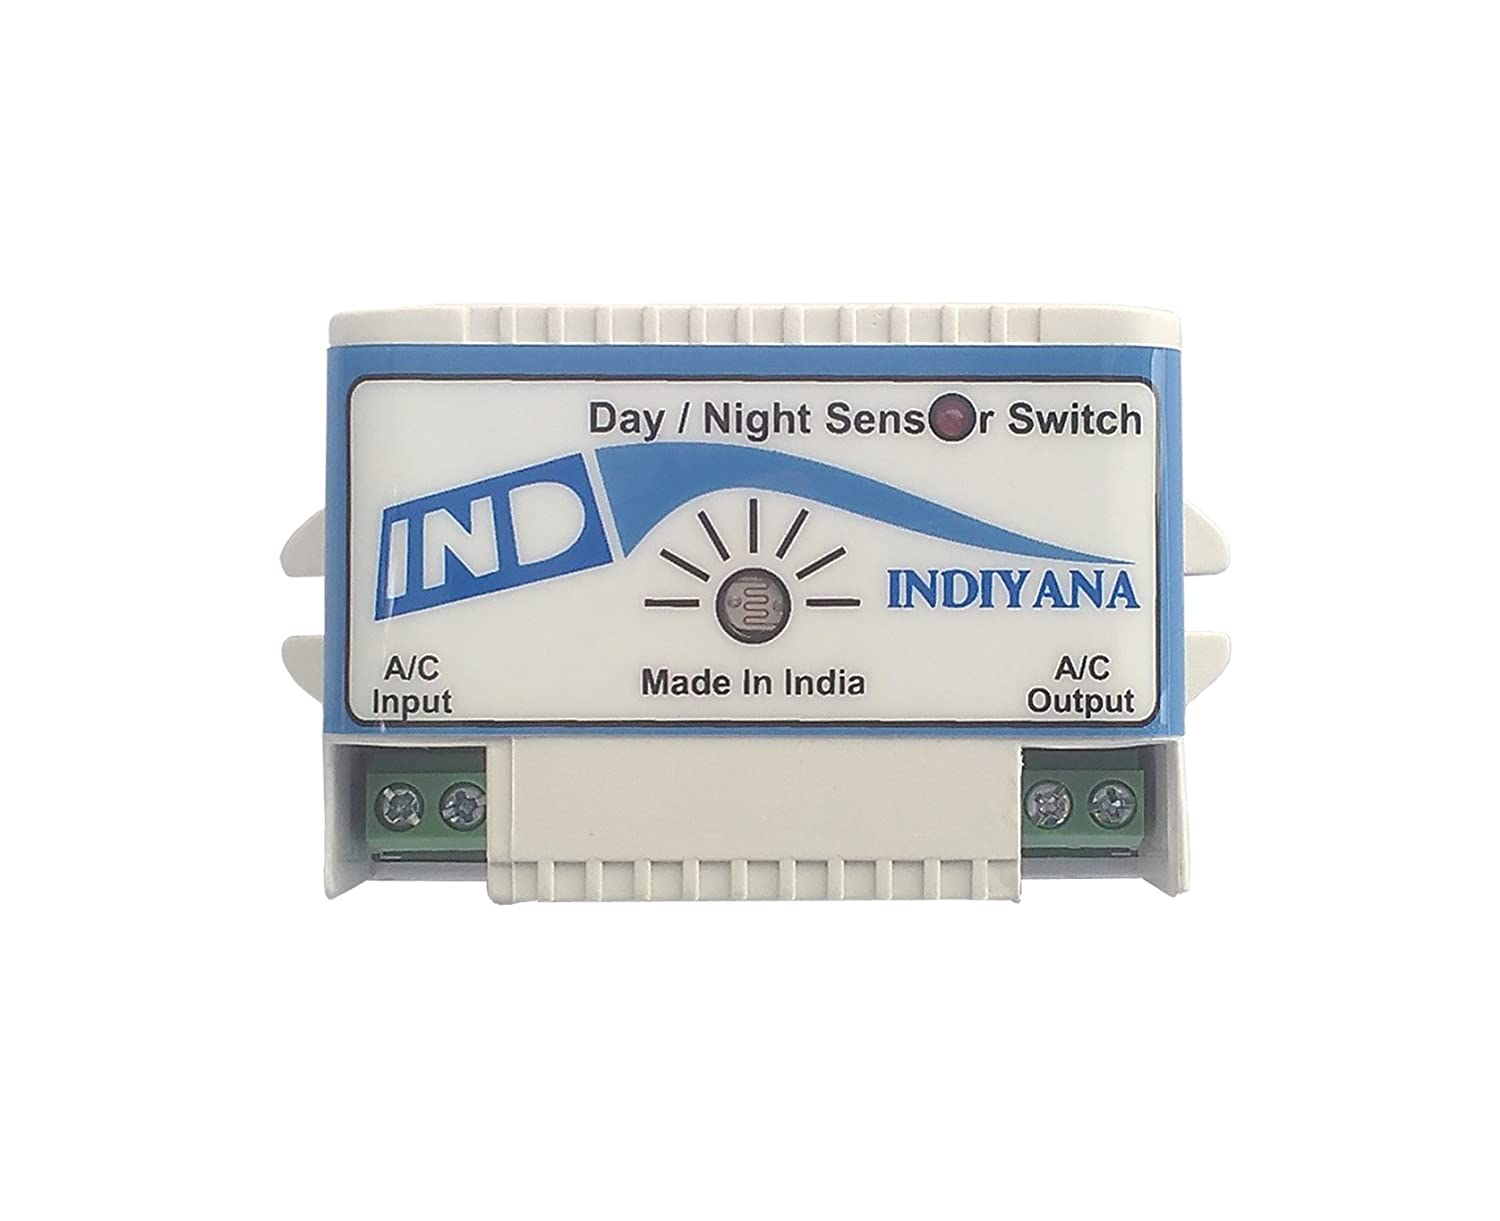 Indiyana Day Night Sensor Switch Ldr Control Auto On In Off Bright Light For This Electronic Circuit You Can Use A Wide Range Morning 230 Volt Ac Lighting Automatic Dusk To Dawn